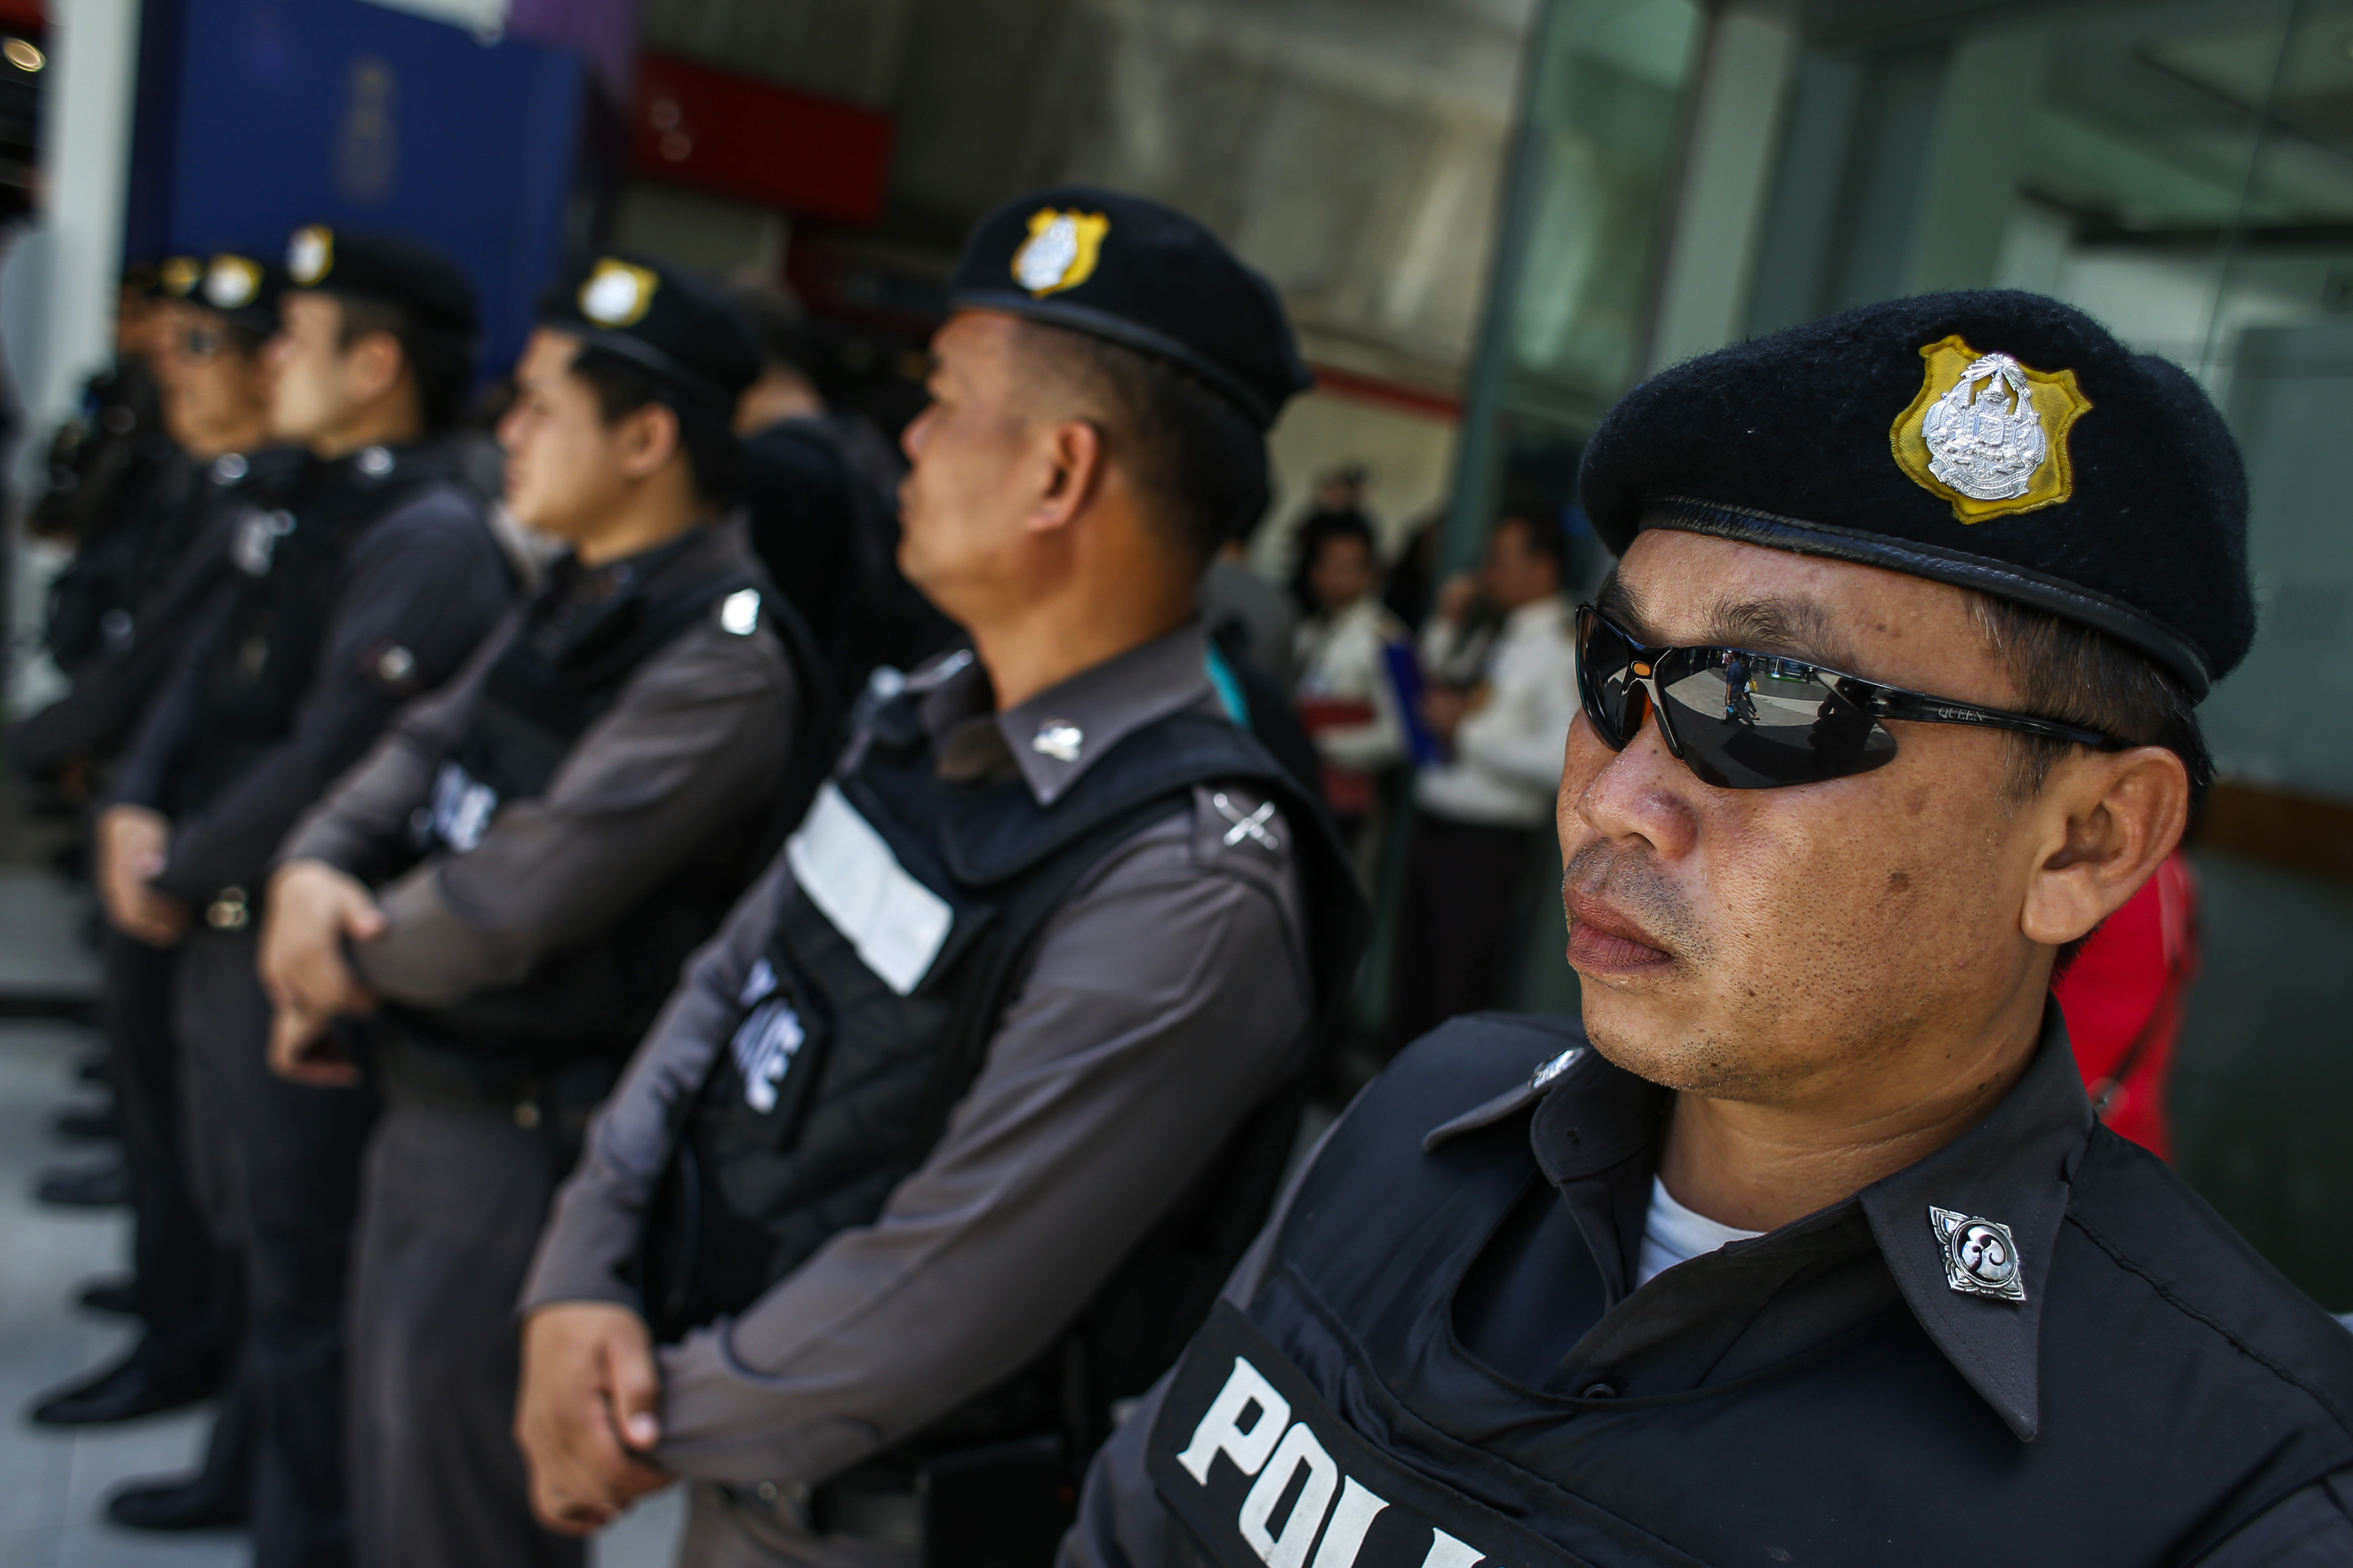 Police officers stand guard at a shopping mall in Bangkok on June 8, 2014